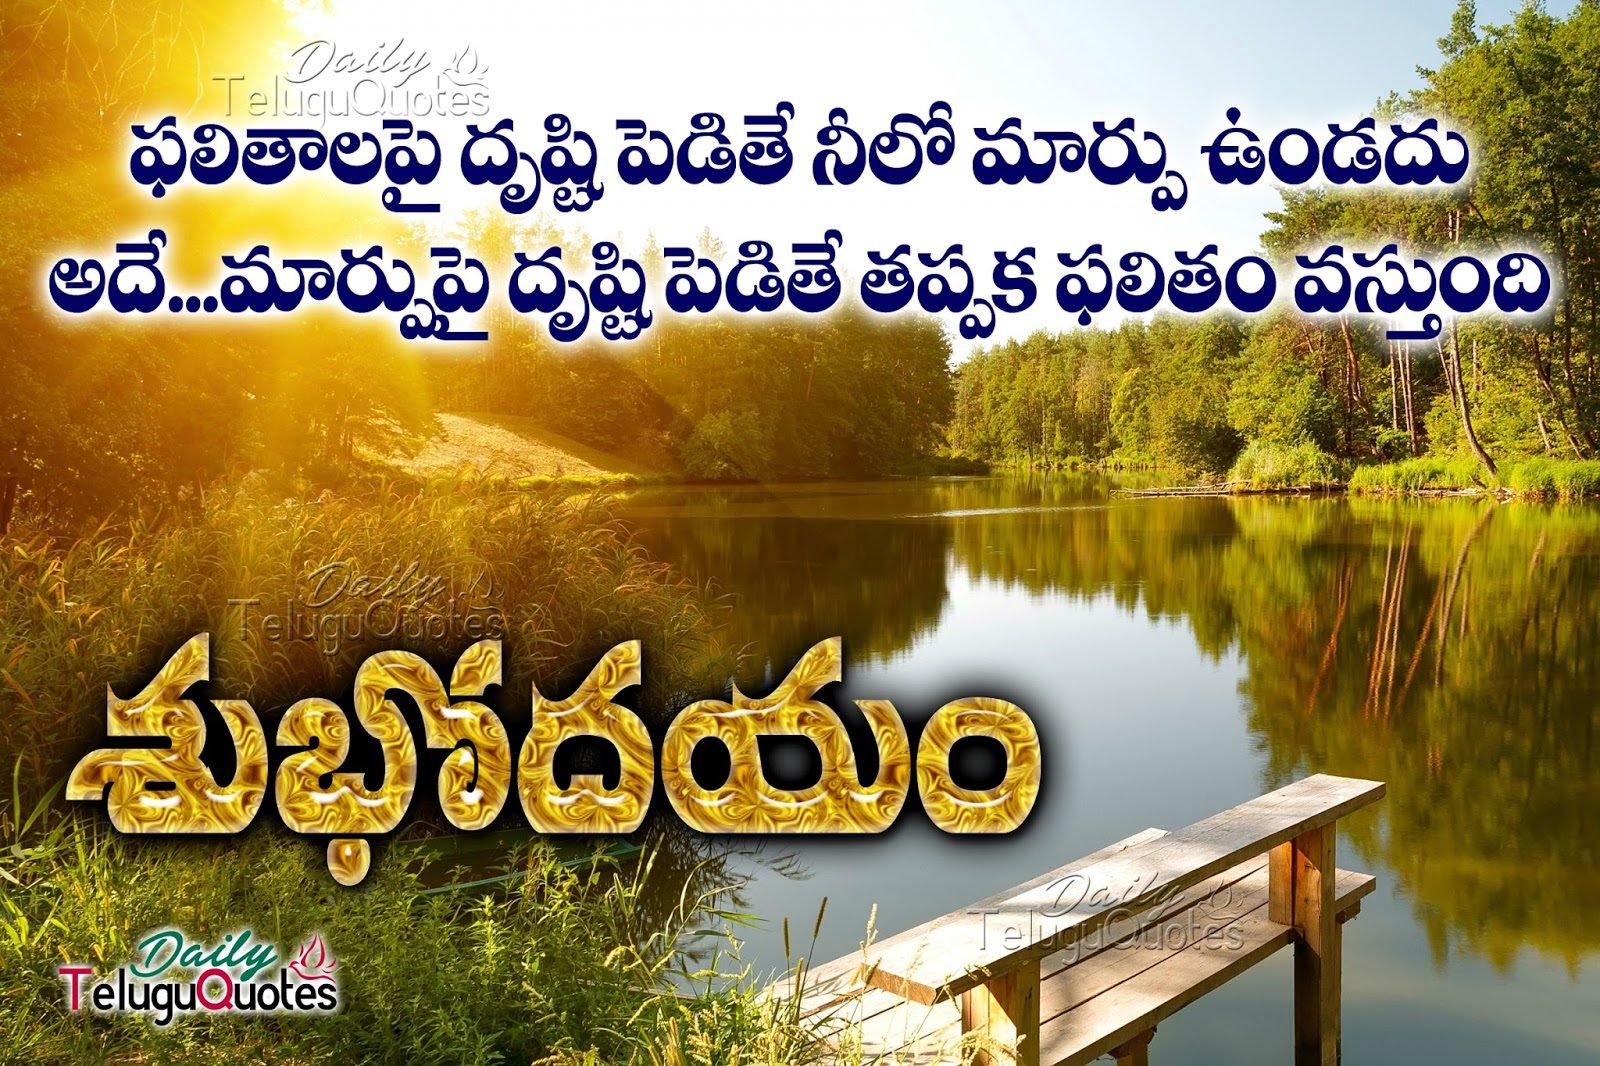 Telugu good morning greetings and images abot life famous good morning telugu quotes and greetings with beautyful life message hd wallpapers m4hsunfo